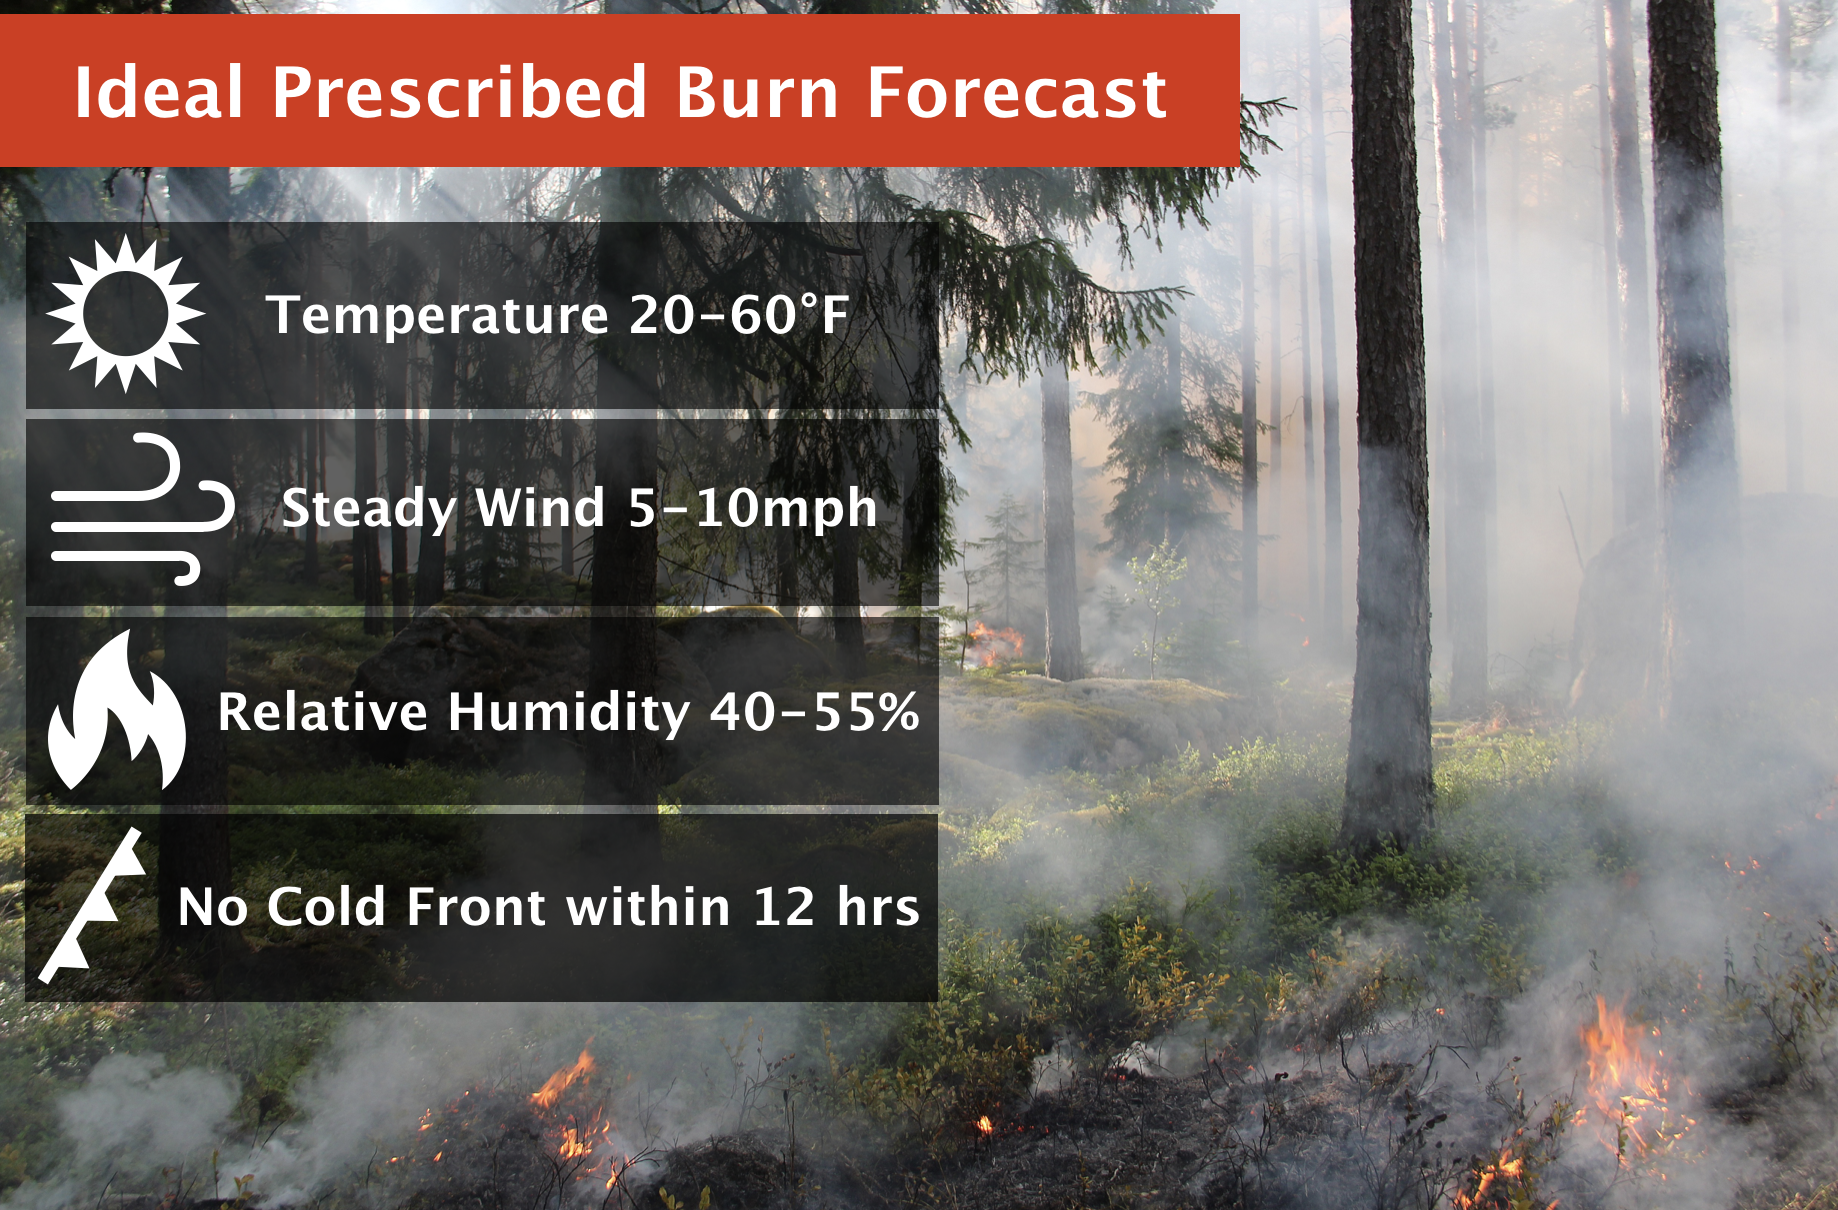 Ideal Prescribed Burn Forecast Conditions